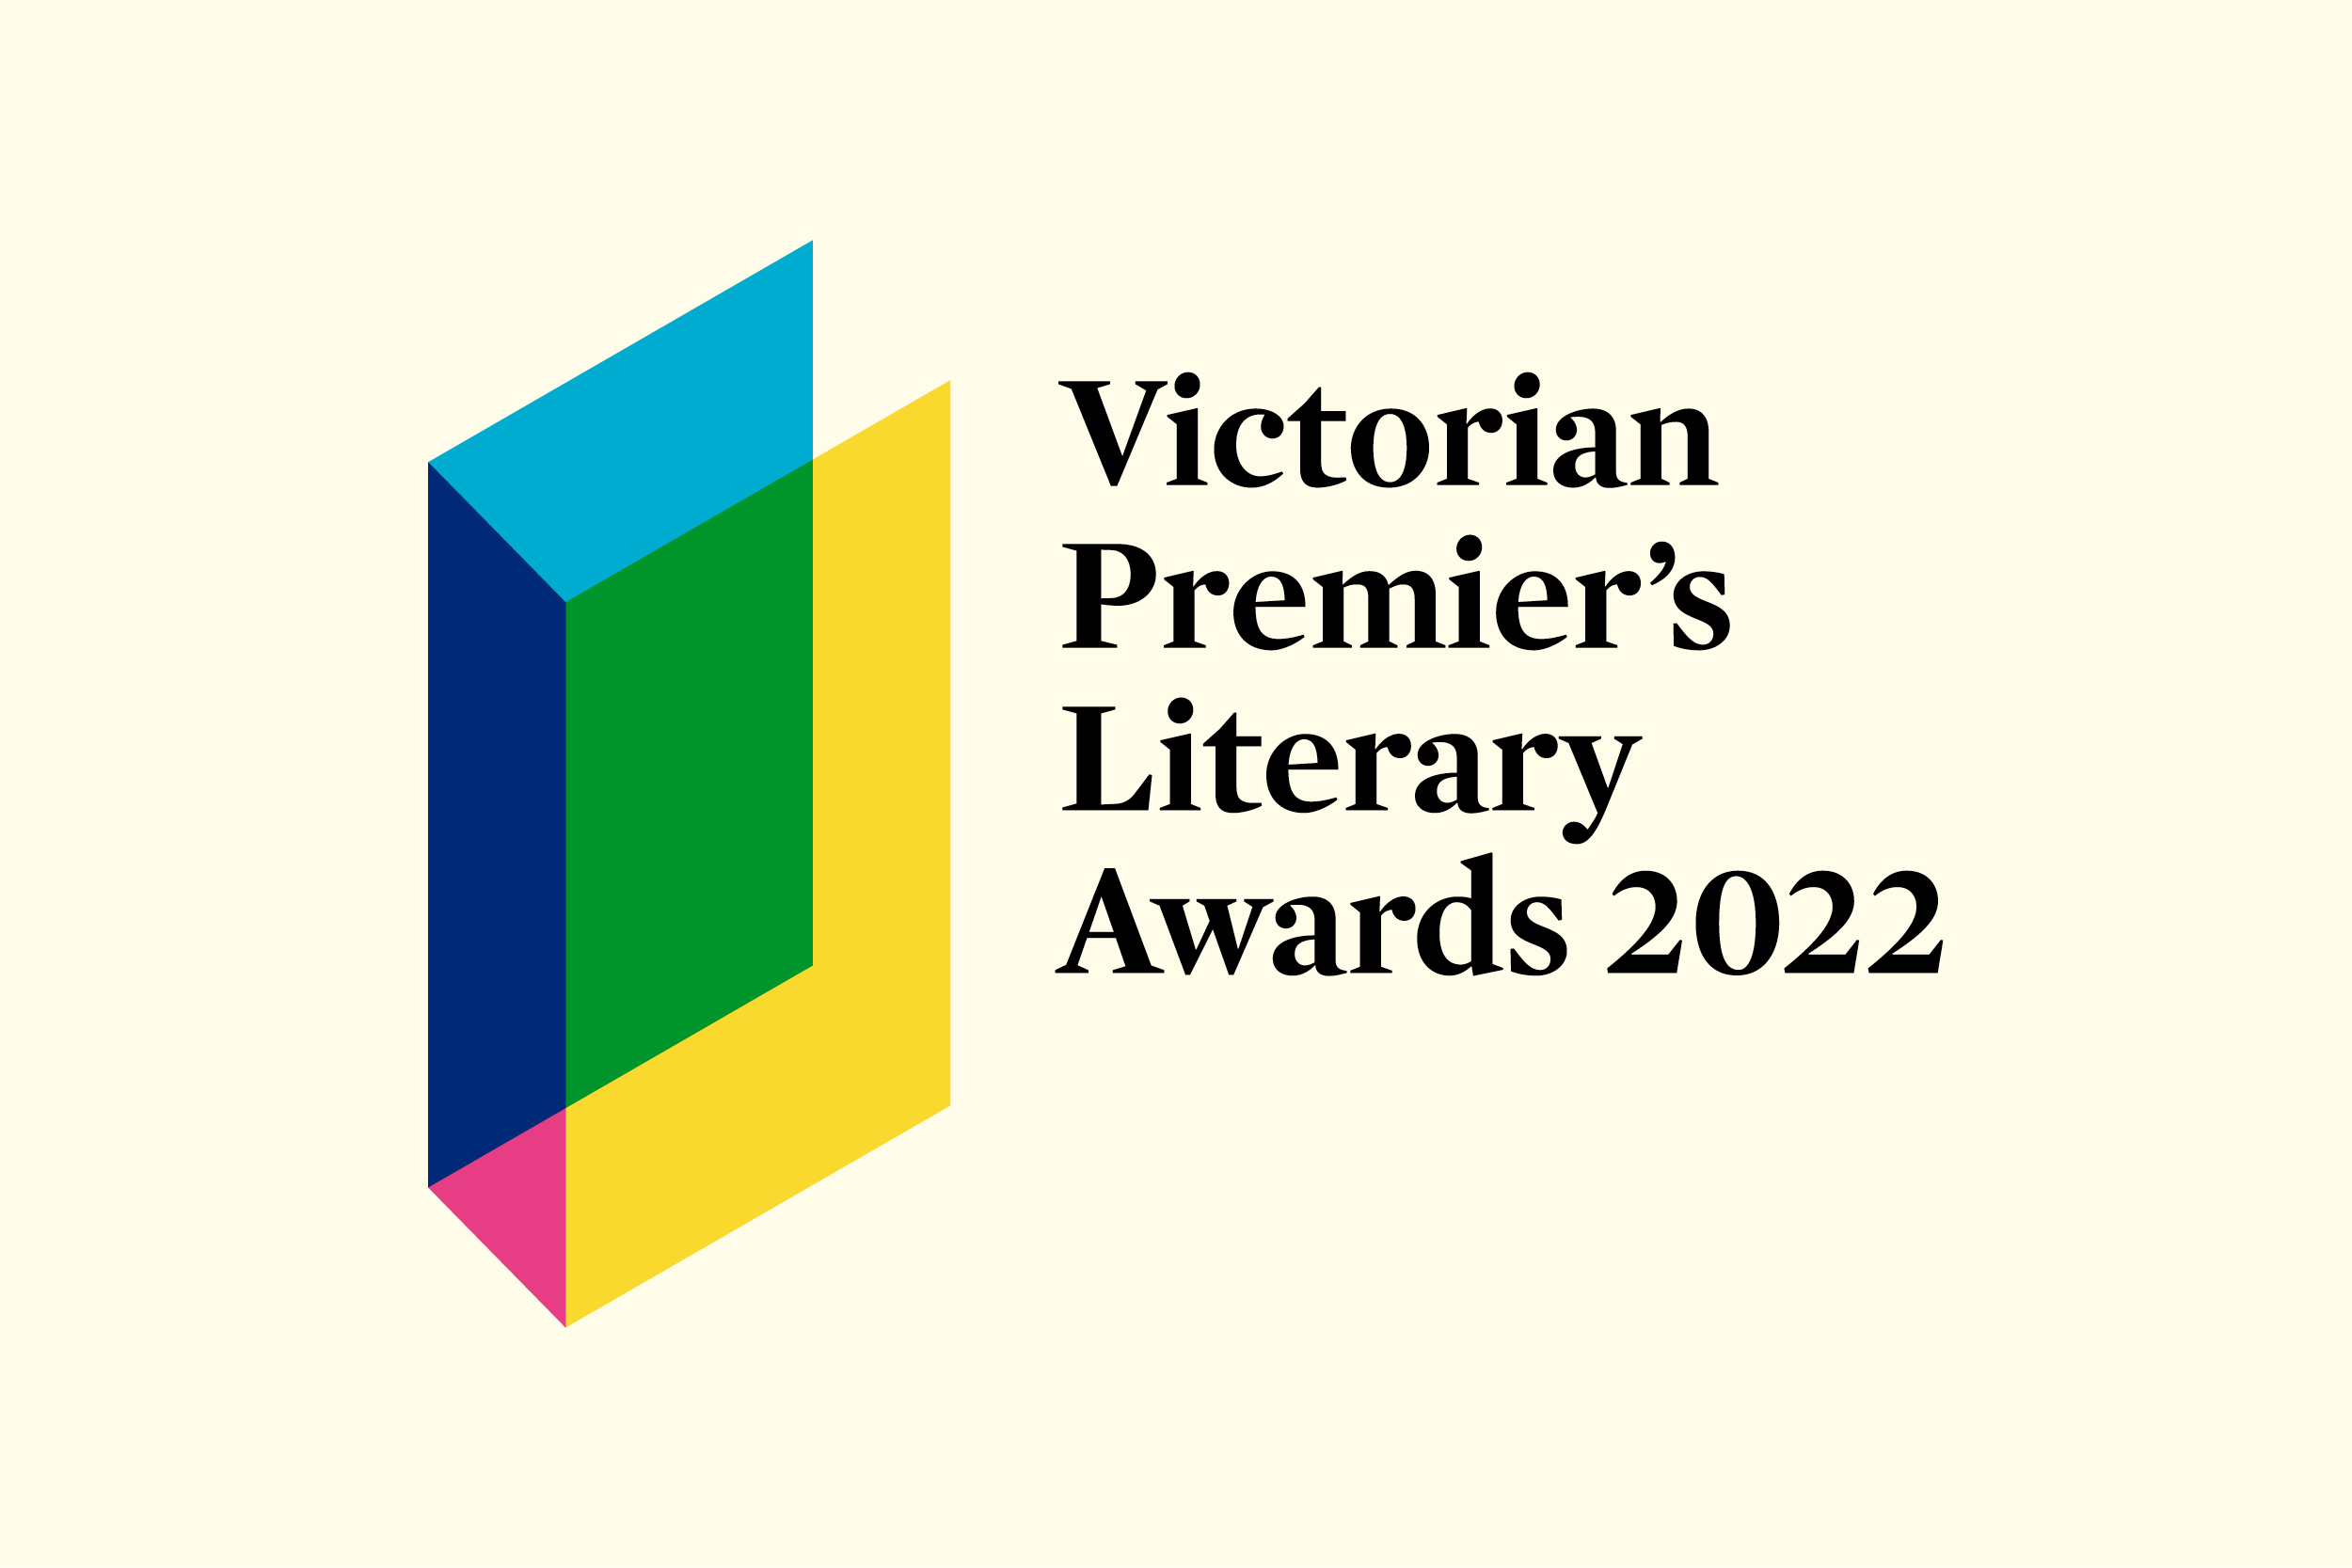 VPLA 2022 Artwork with rainbow outlines of a book next to the words 'Victorian Premier's Literary Awards 2022'